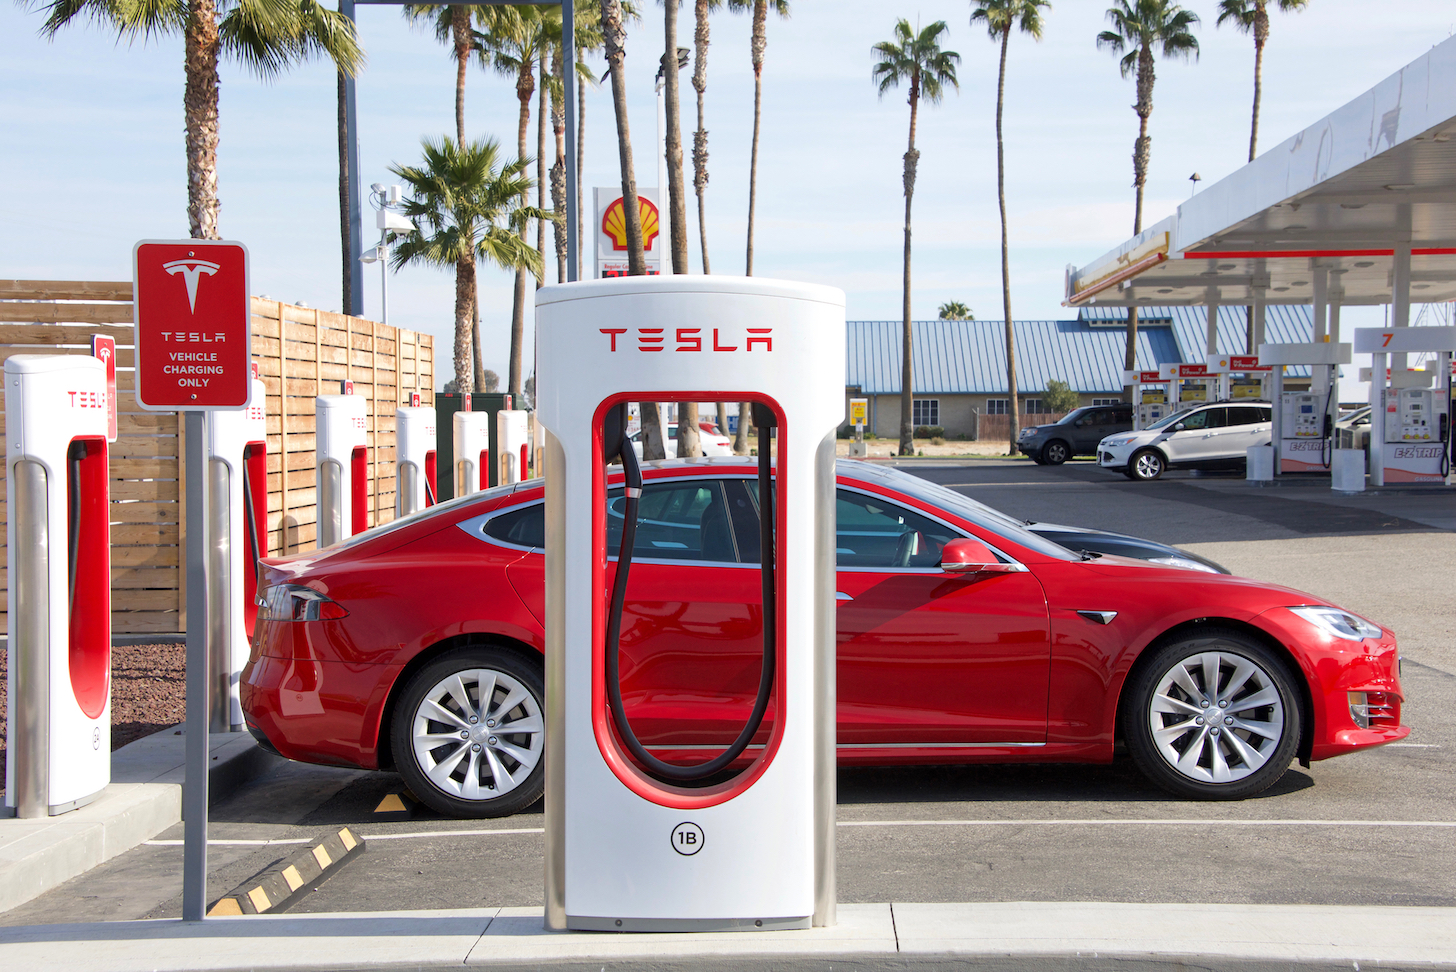 A new study from Engaged Tracking suggests that electric Tesla vehicles are not as environmentally friendly as previously reported.